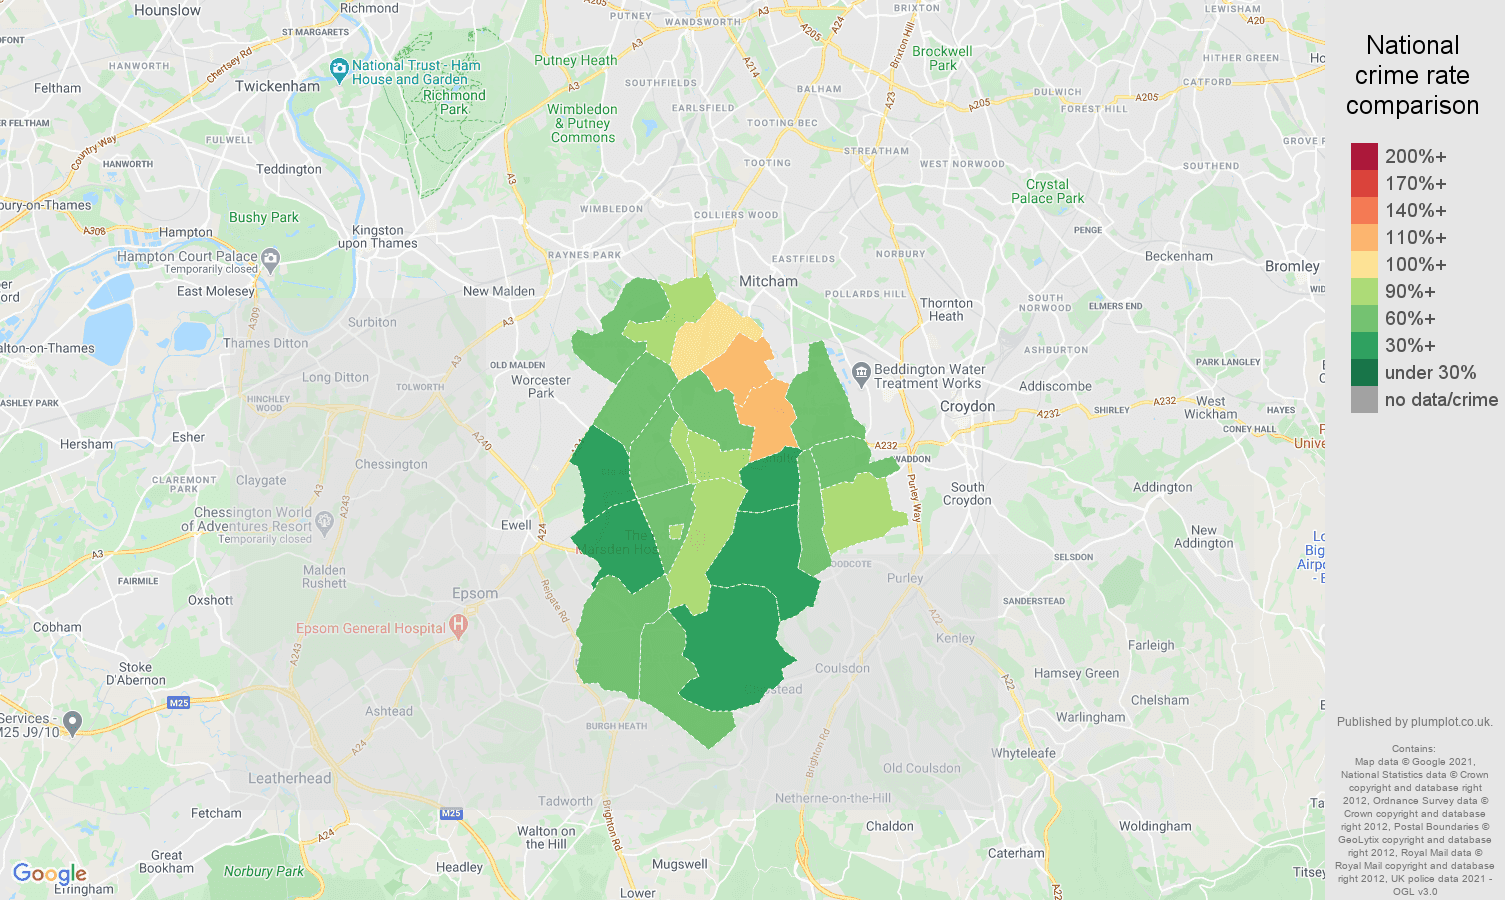 Sutton violent crime rate comparison map